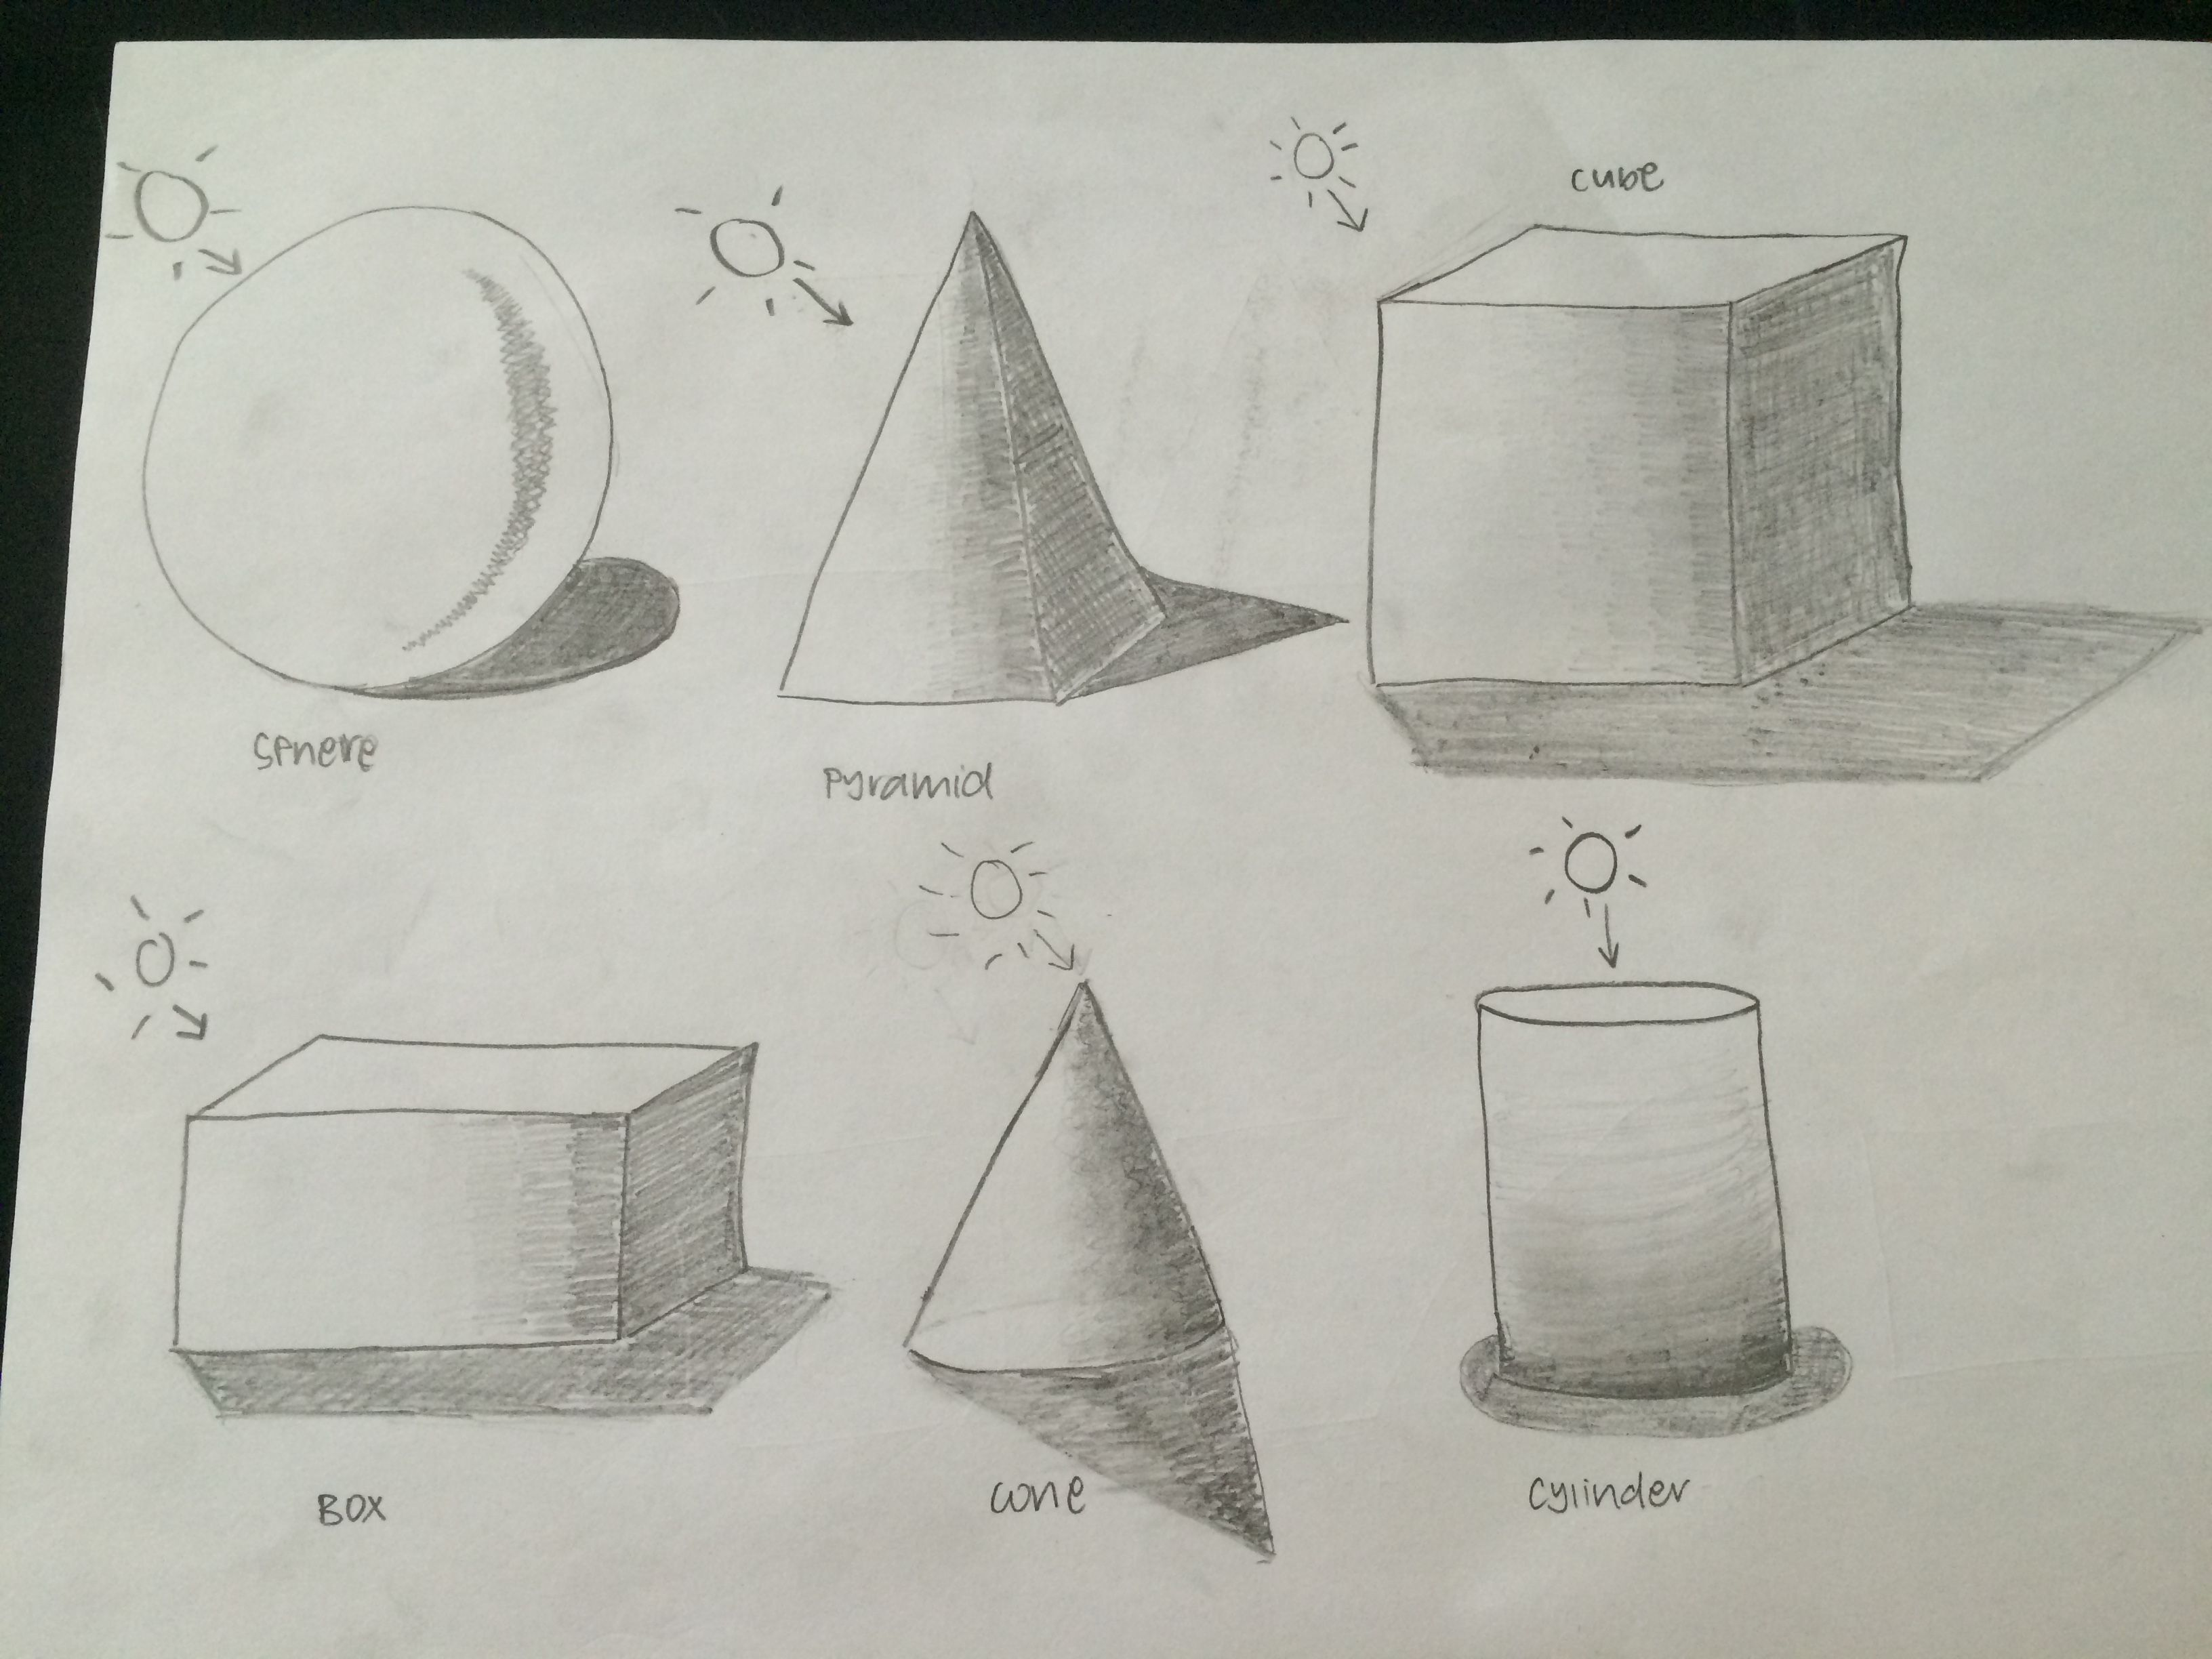 Line Drawing With Shading : B translate basic shapes into simple forms with shading